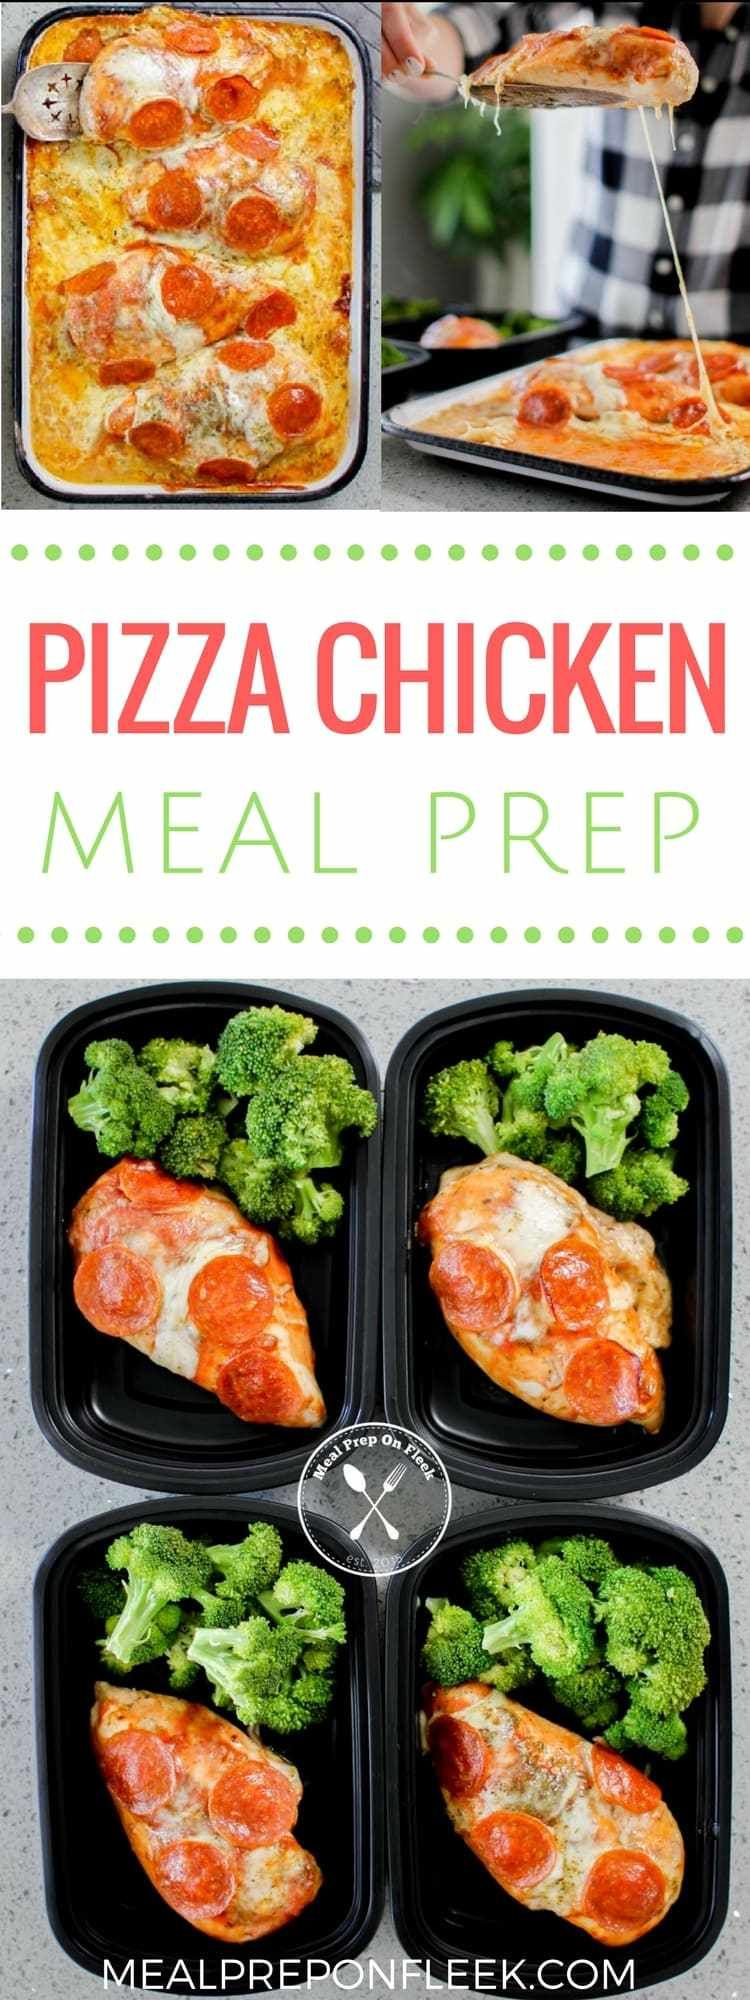 Pizza Chicken Meal Prep So when your craving for pizza kicks in (sometimes daily for us!) you can satisfy it with this protein-packed, low carb meal prep recipe that can be made for less than $4!